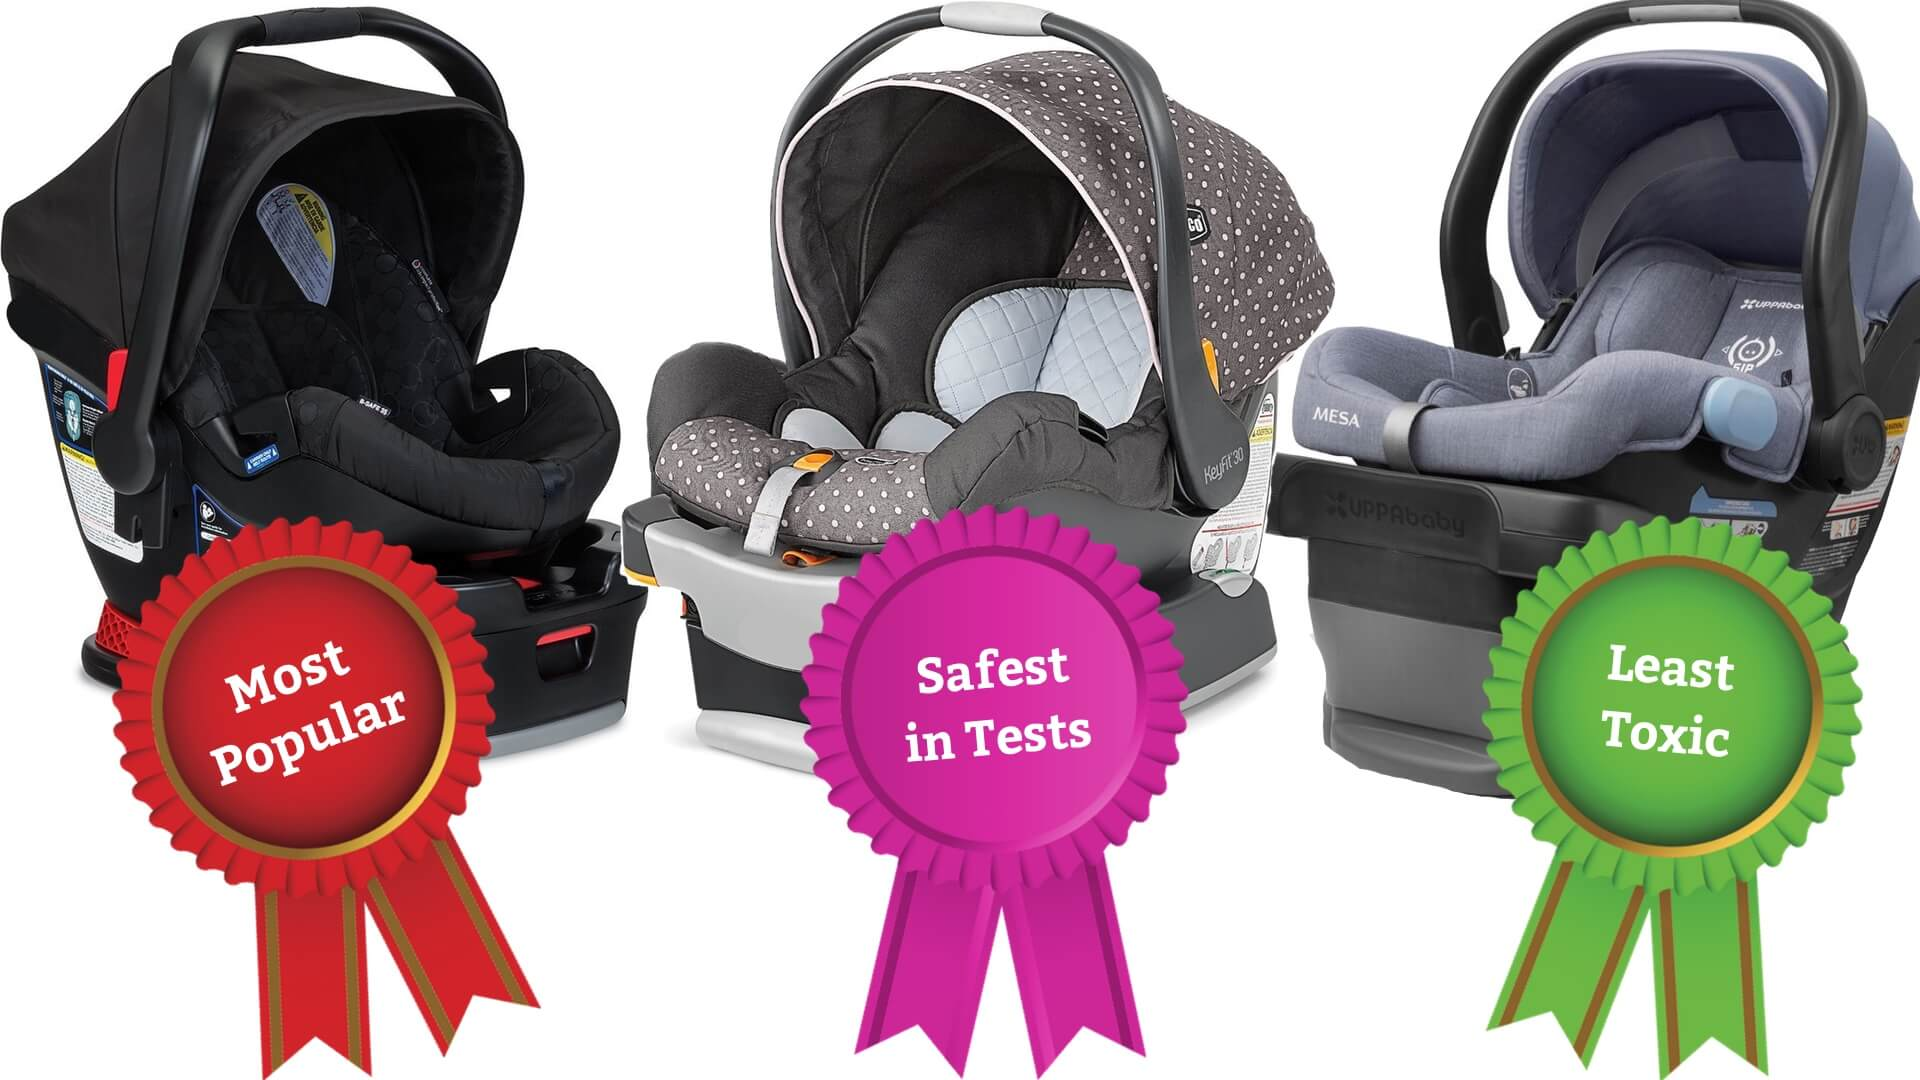 Baby Capsule Convertible Car Seat Best Infant Car Seat Safest Most Natural Options